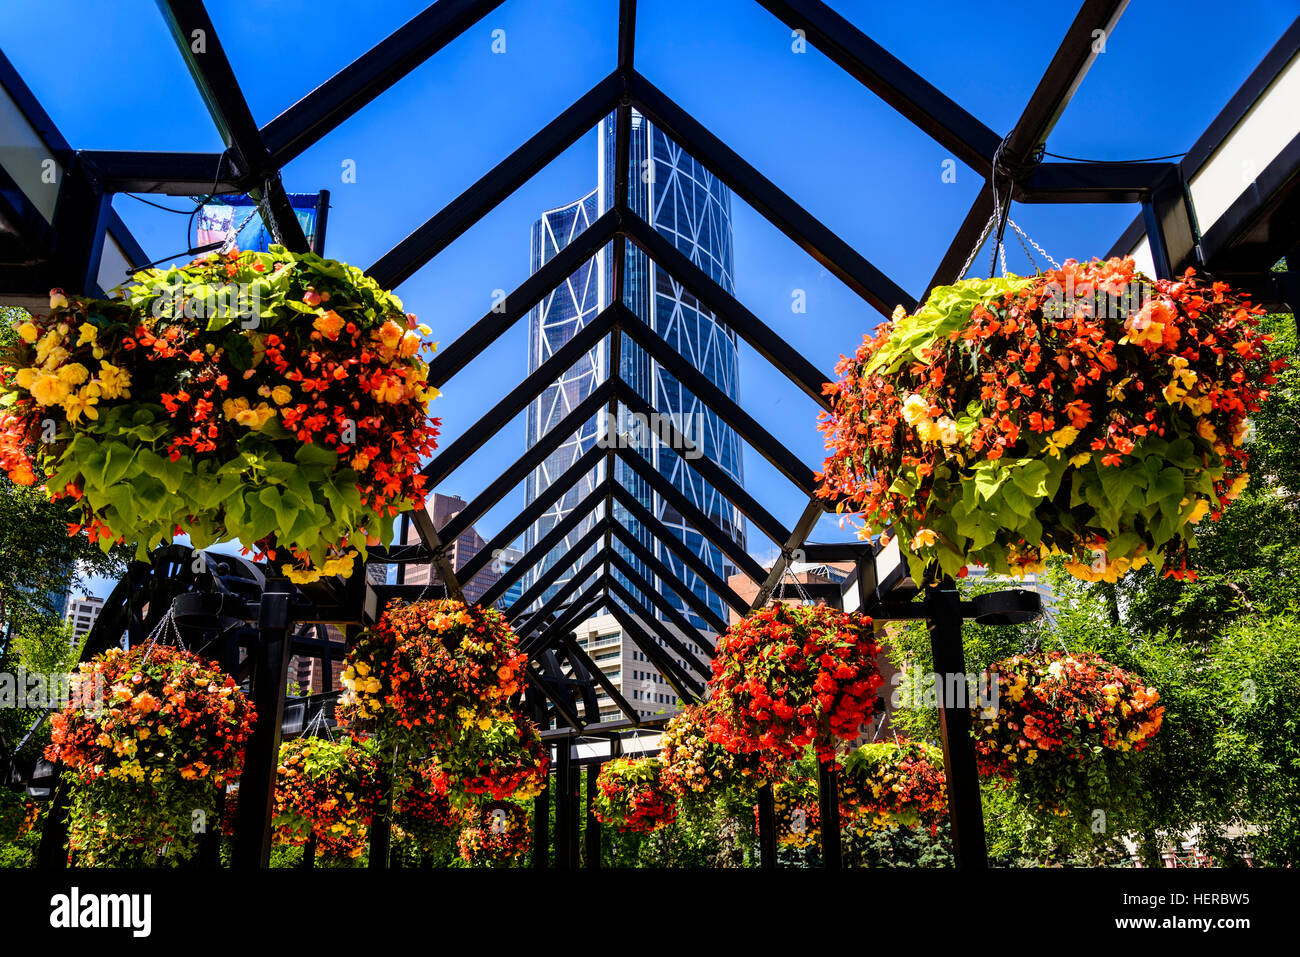 Kanada, Alberta, Bow River Valley, Calgary, Downtown, Olympic Plaza gegen Bow Tower, Arkade - Stock Image